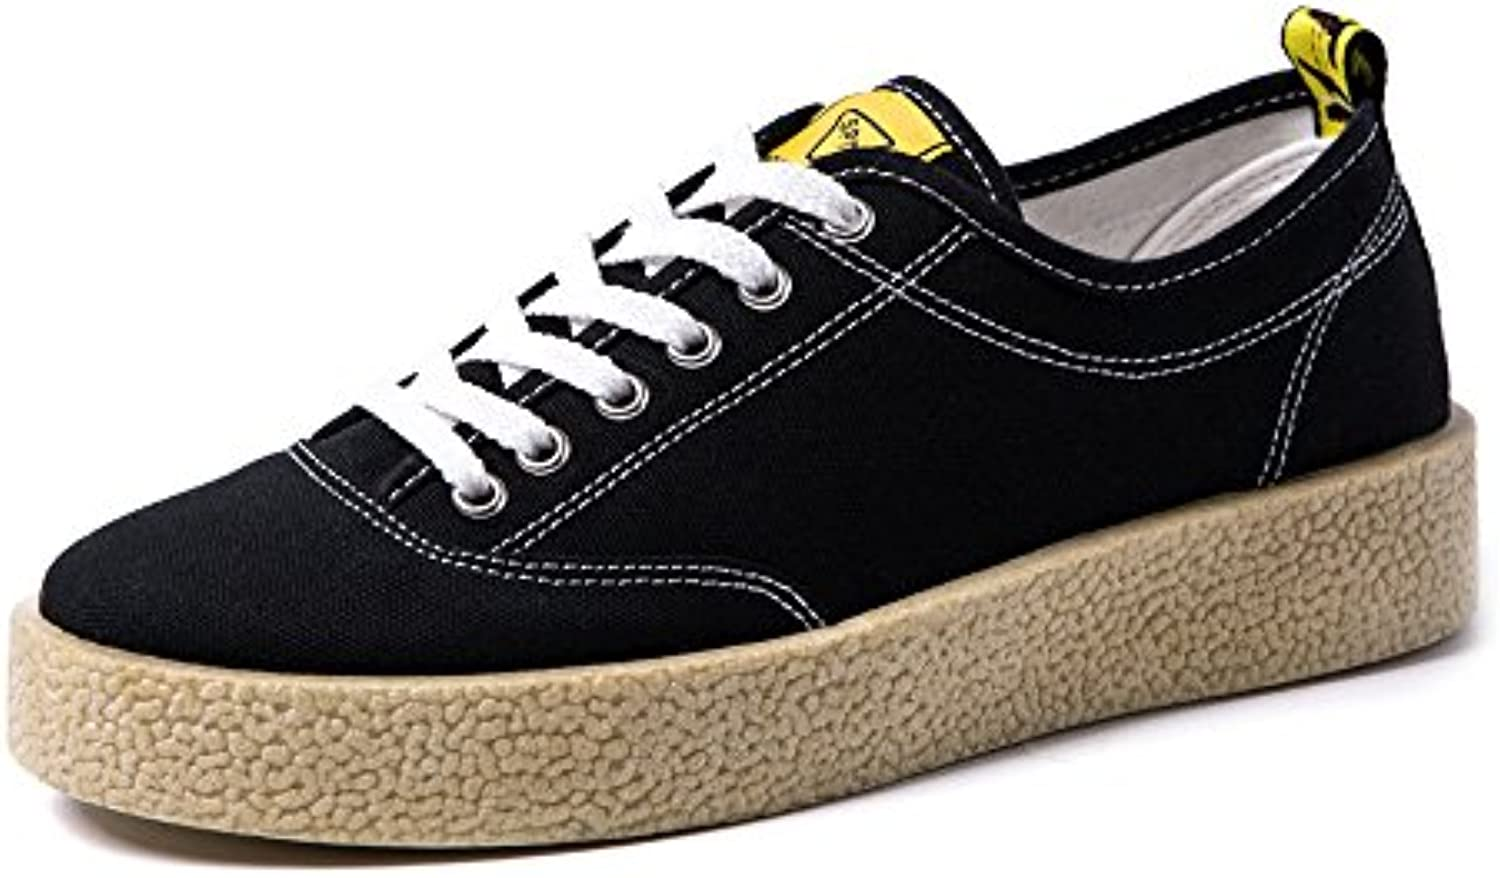 MXNET Canvas Sneakers  Casual Lace up Loafers Flache Sportschuhe Low Top Strong Outsole Schwarz Weiß Farben Freizeit